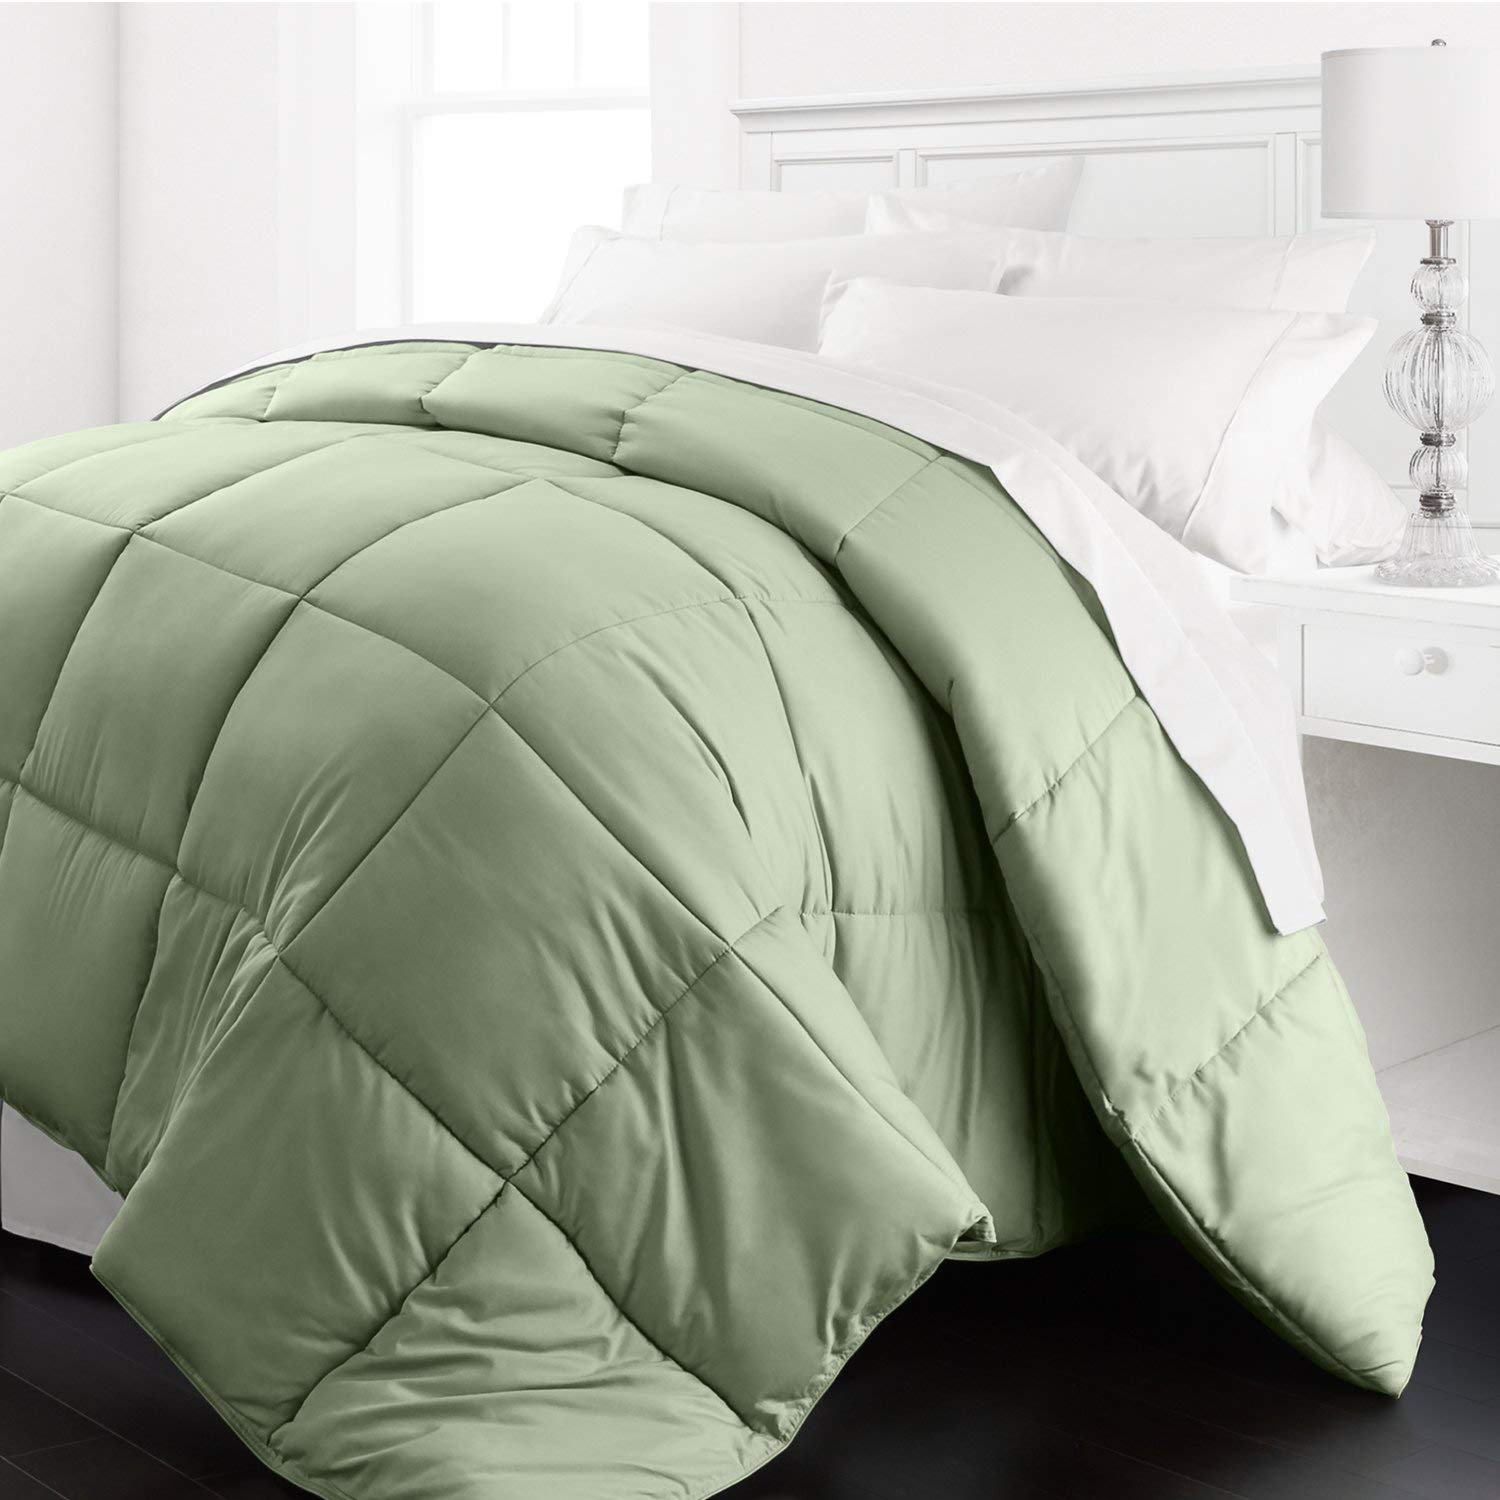 Beckham Hotel Collection Lightweight Comforter Review by www.snoremagazine.com